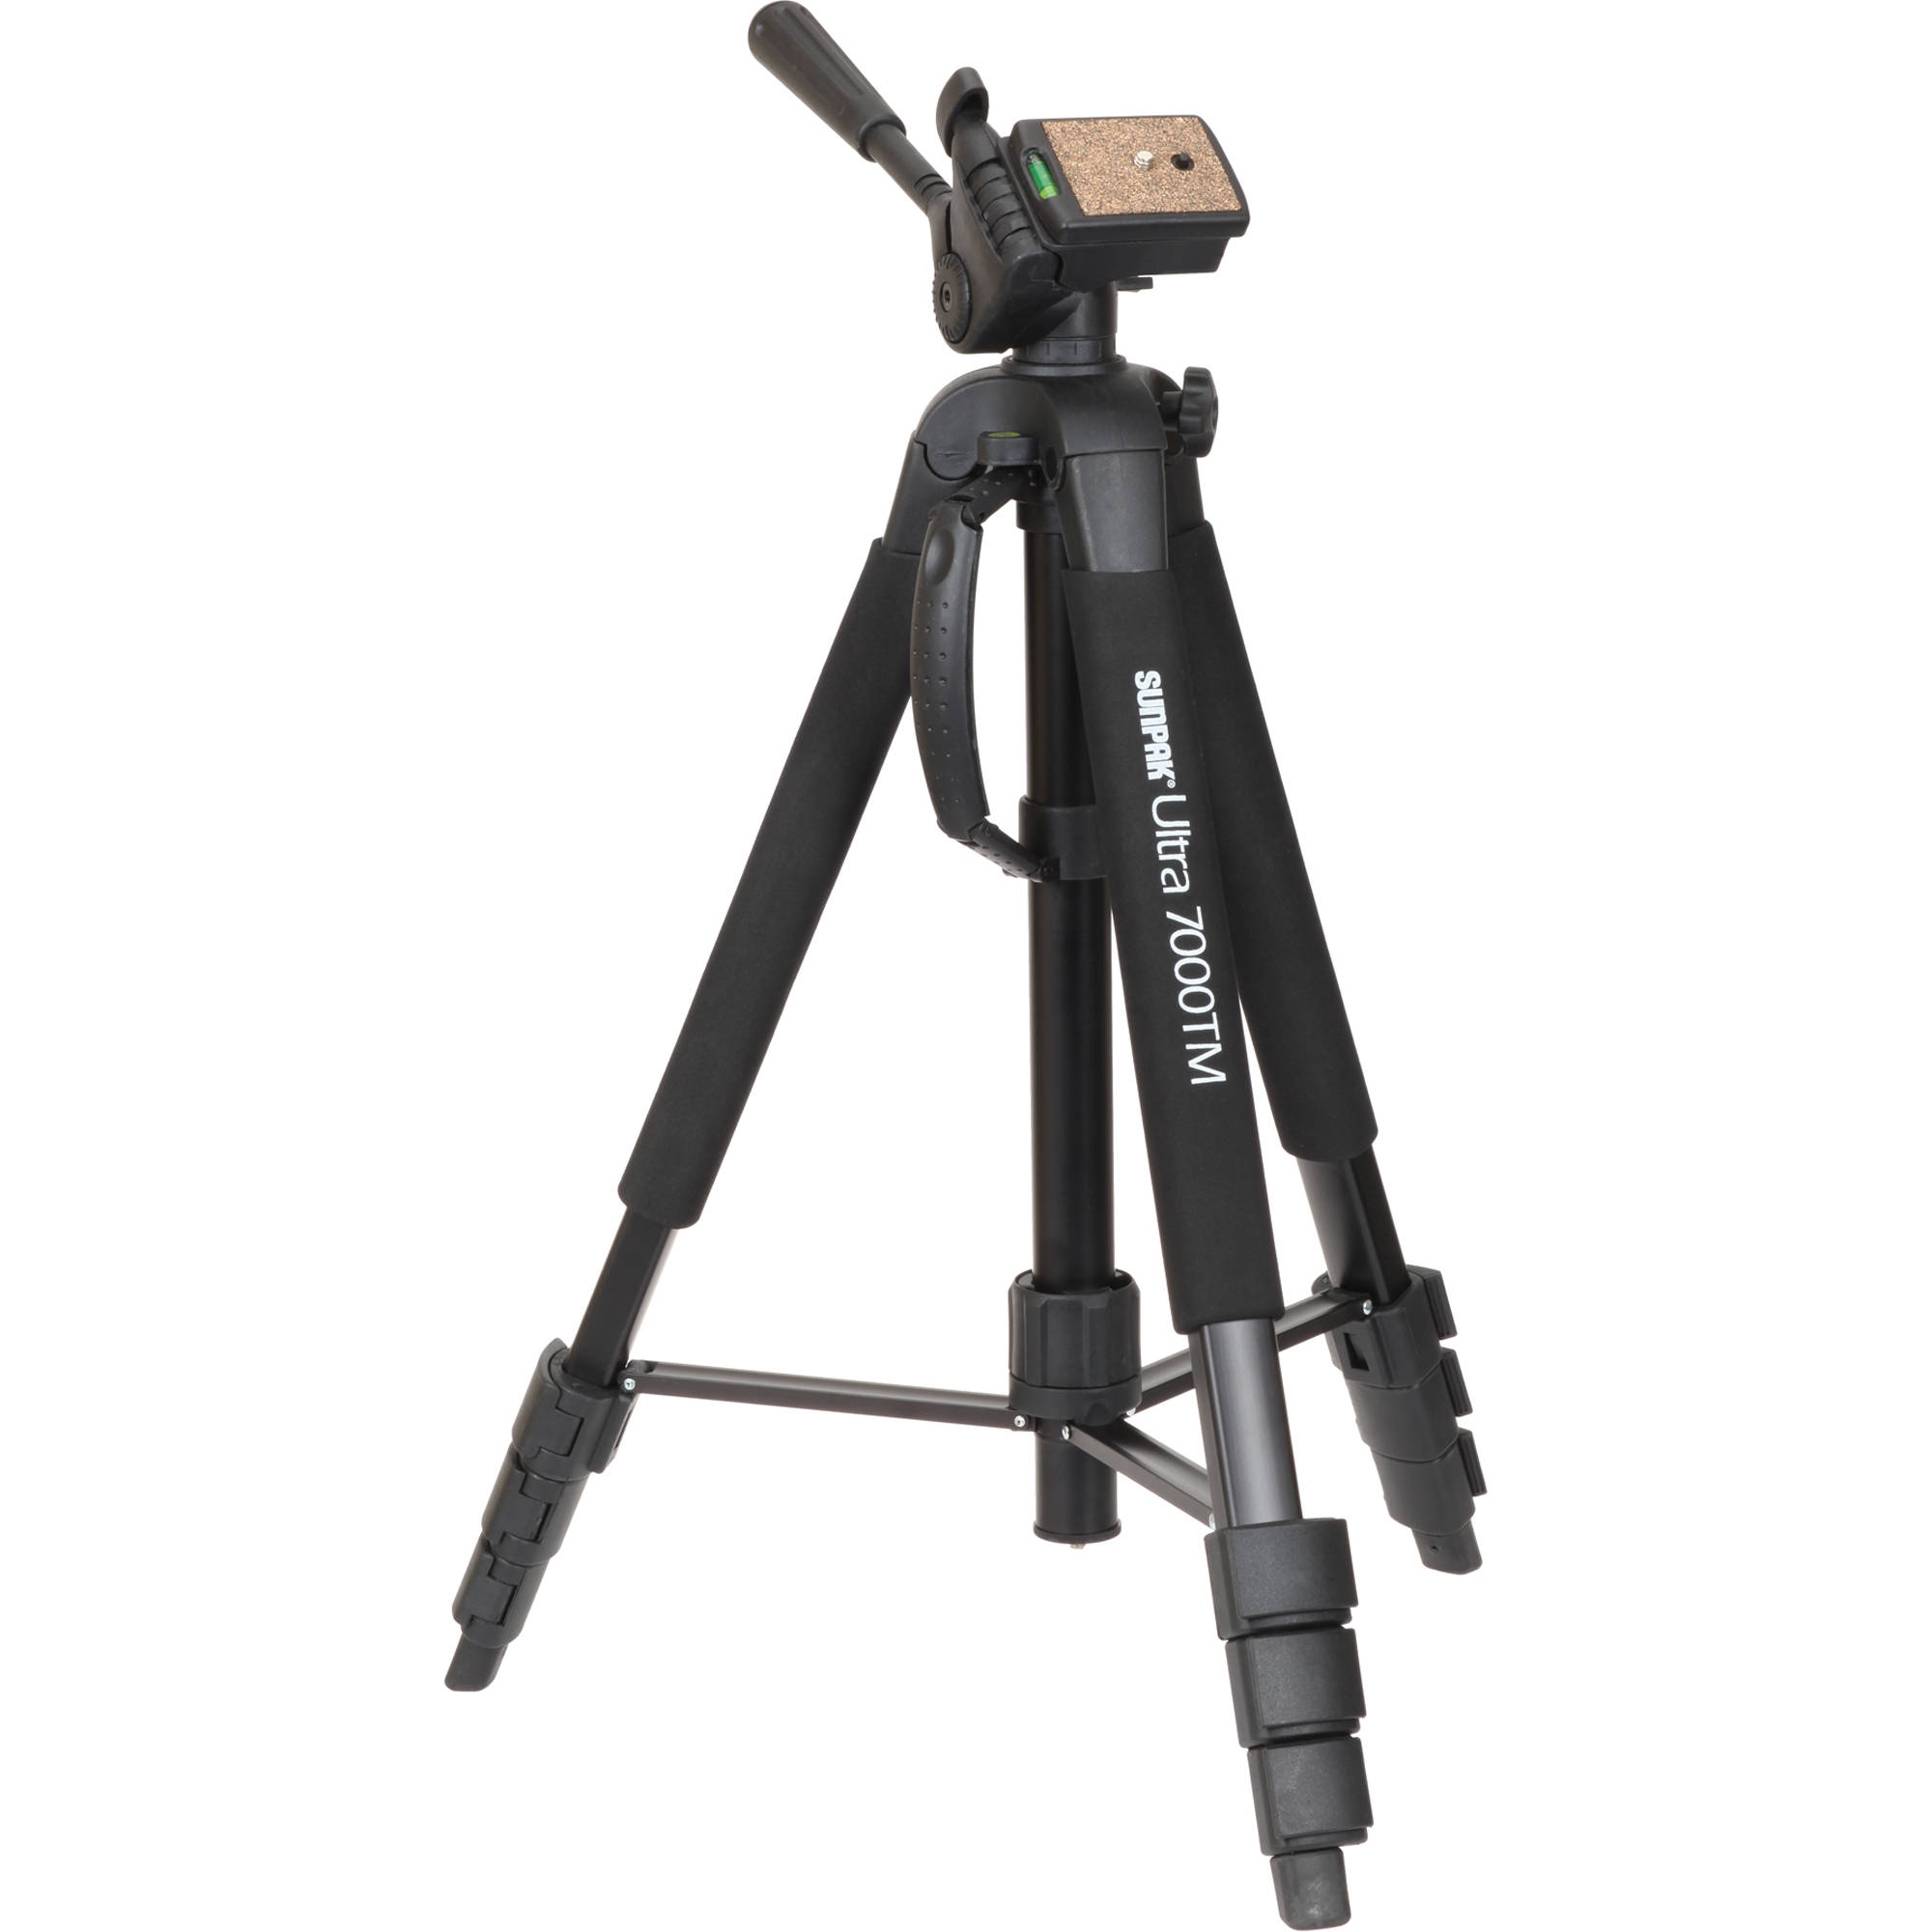 Sunpak Ultra 7000tm Tri Monopod With 3 Way 620 700tm Bh Photo The Single Pole Switch Works 3way Partly Right Pan And Tilt